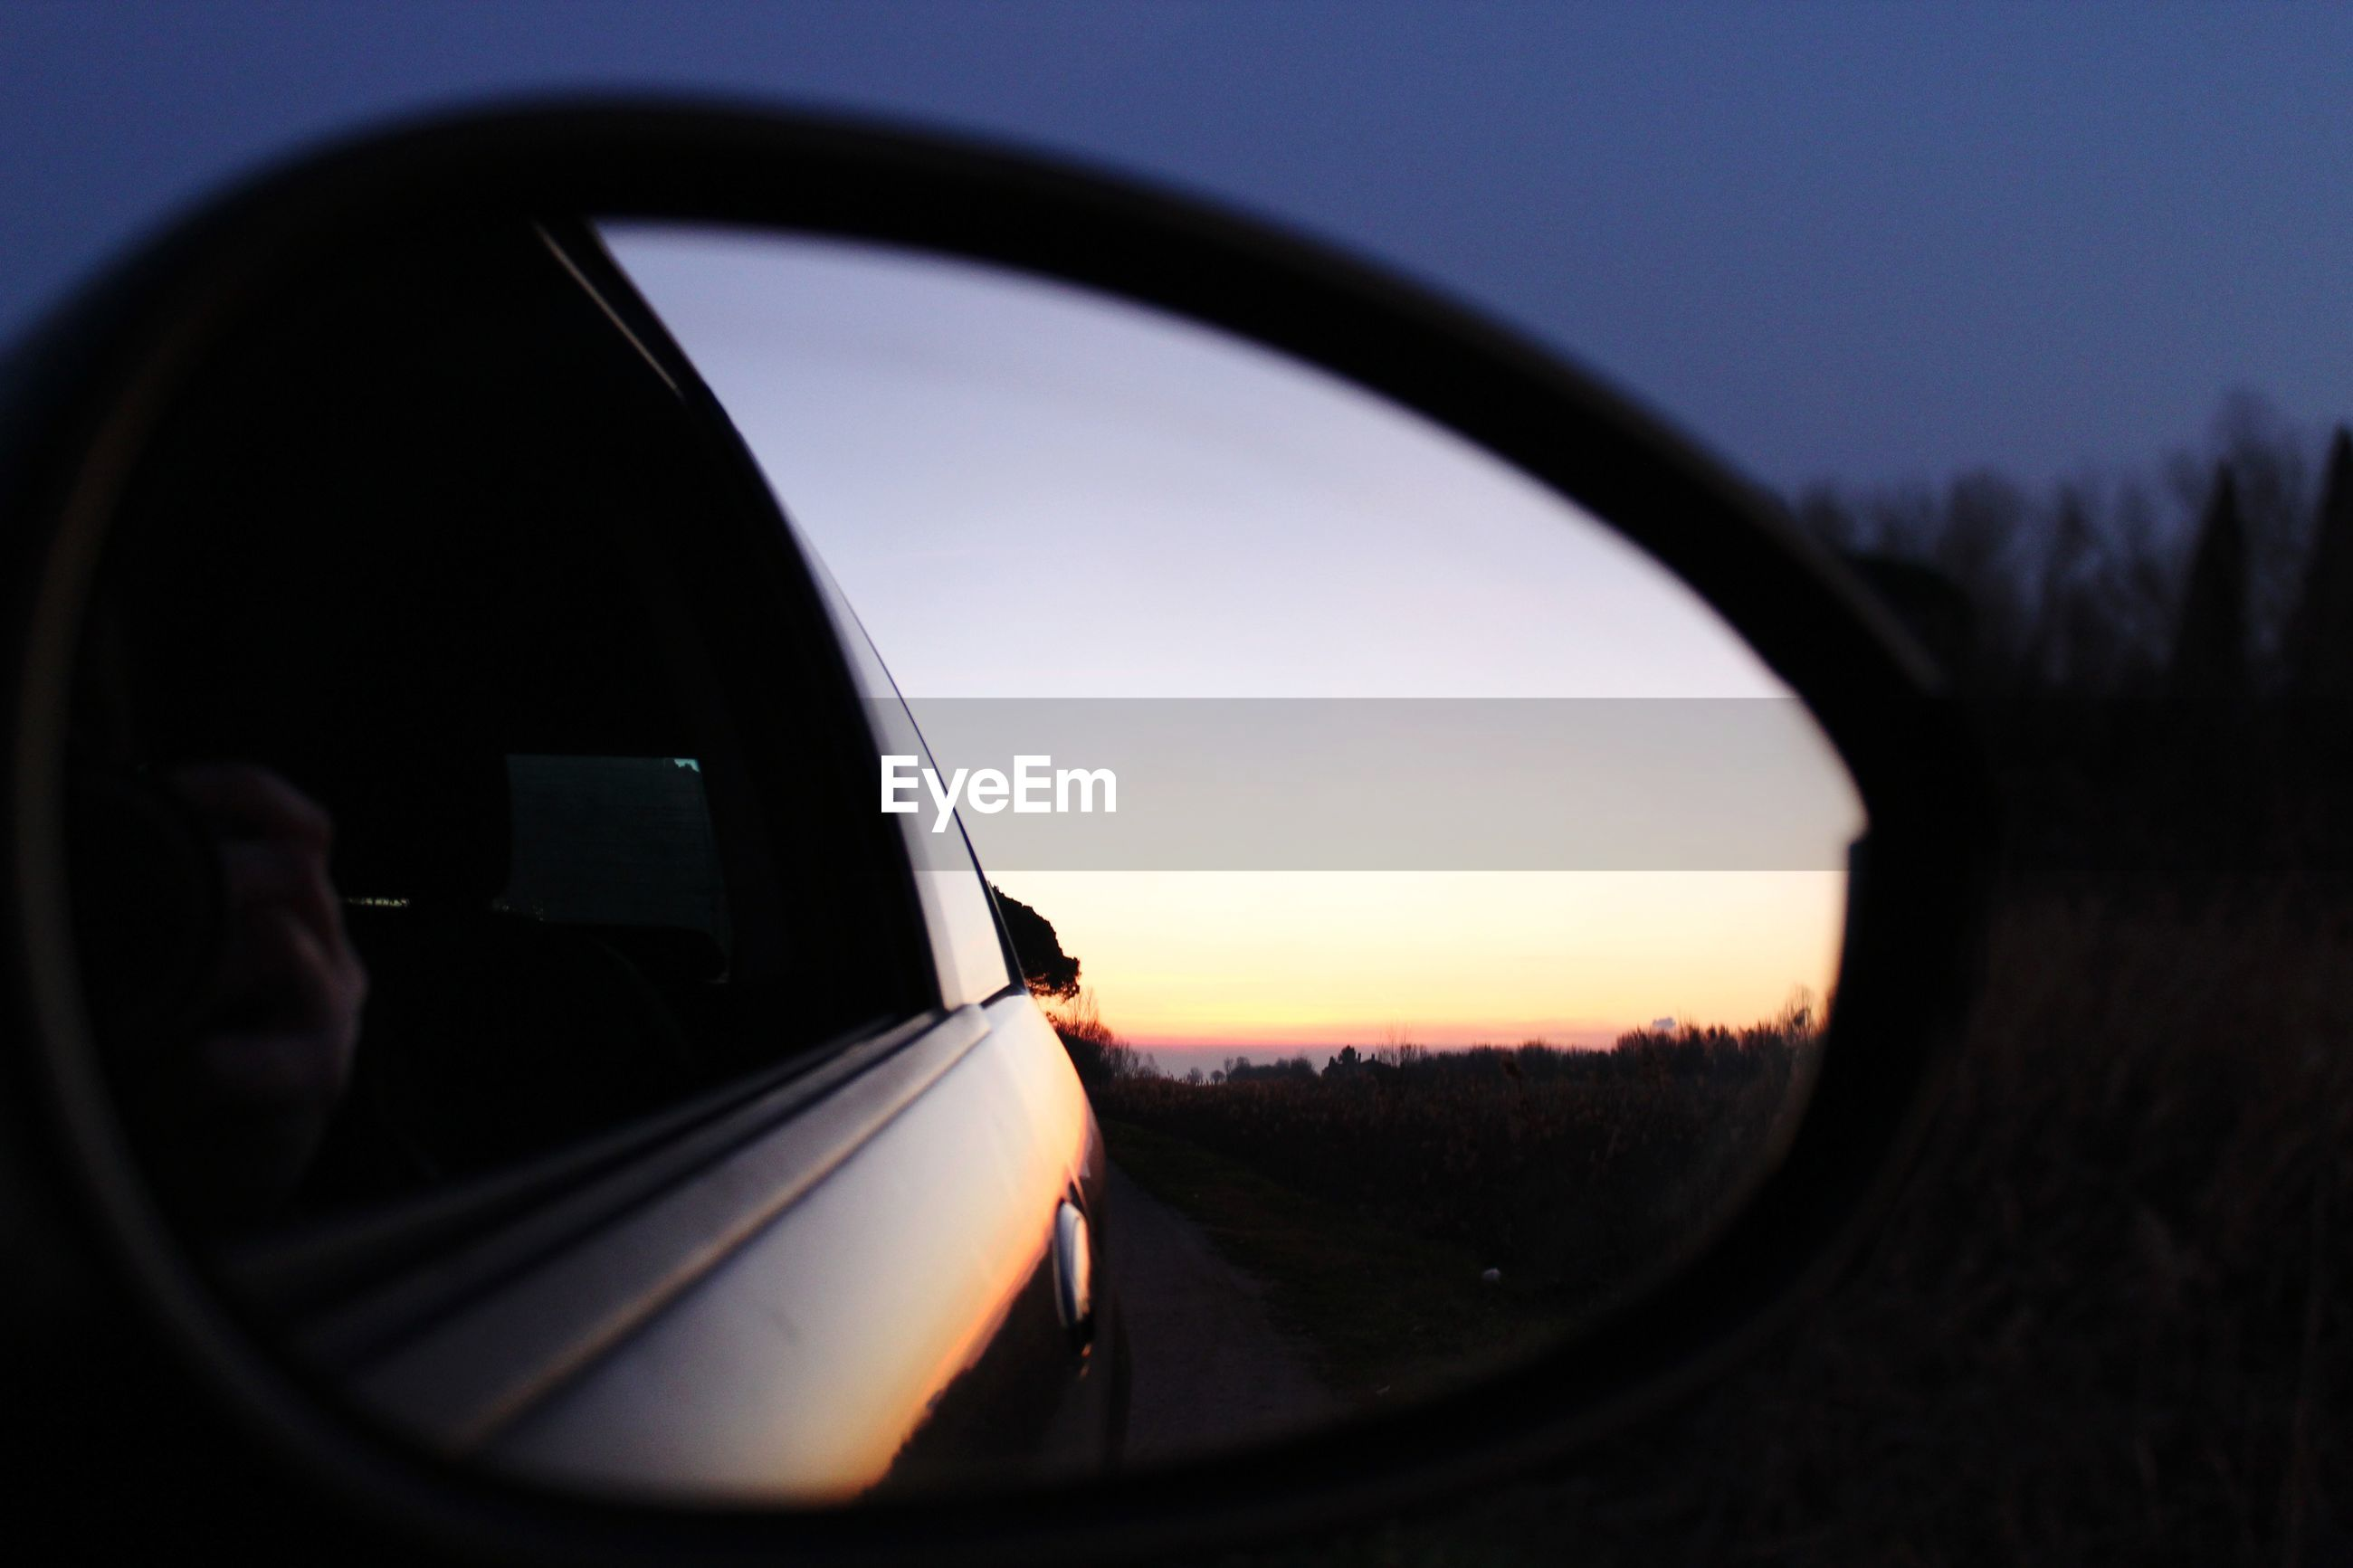 Reflection of sunset in car side-view mirror